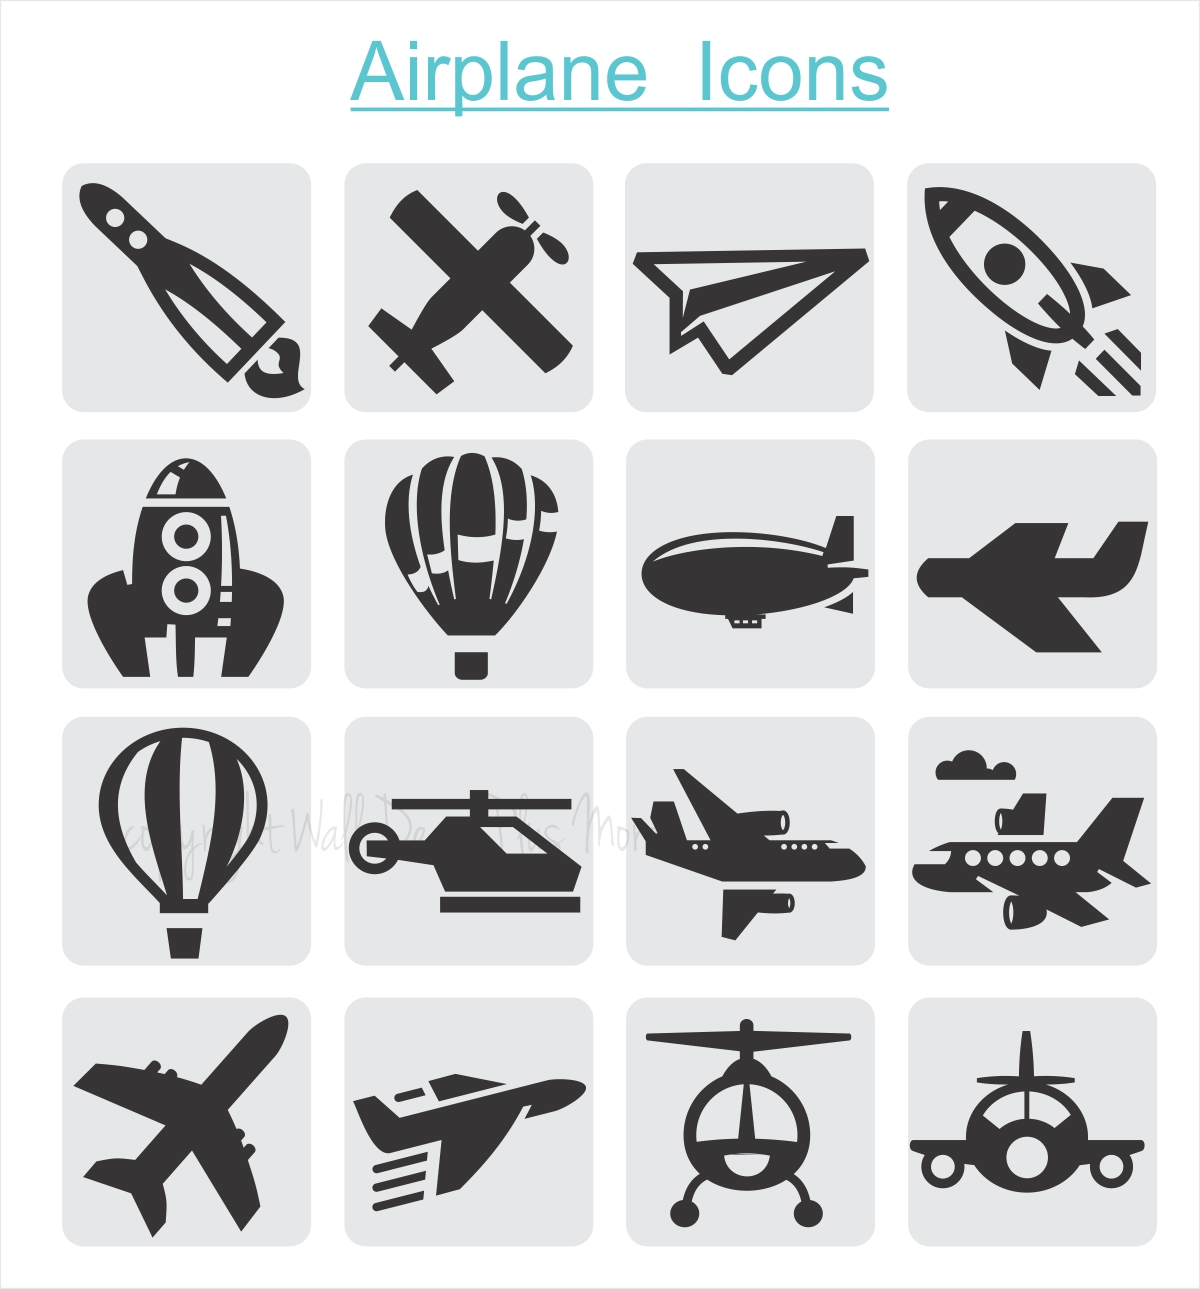 airplane-icons.jpg